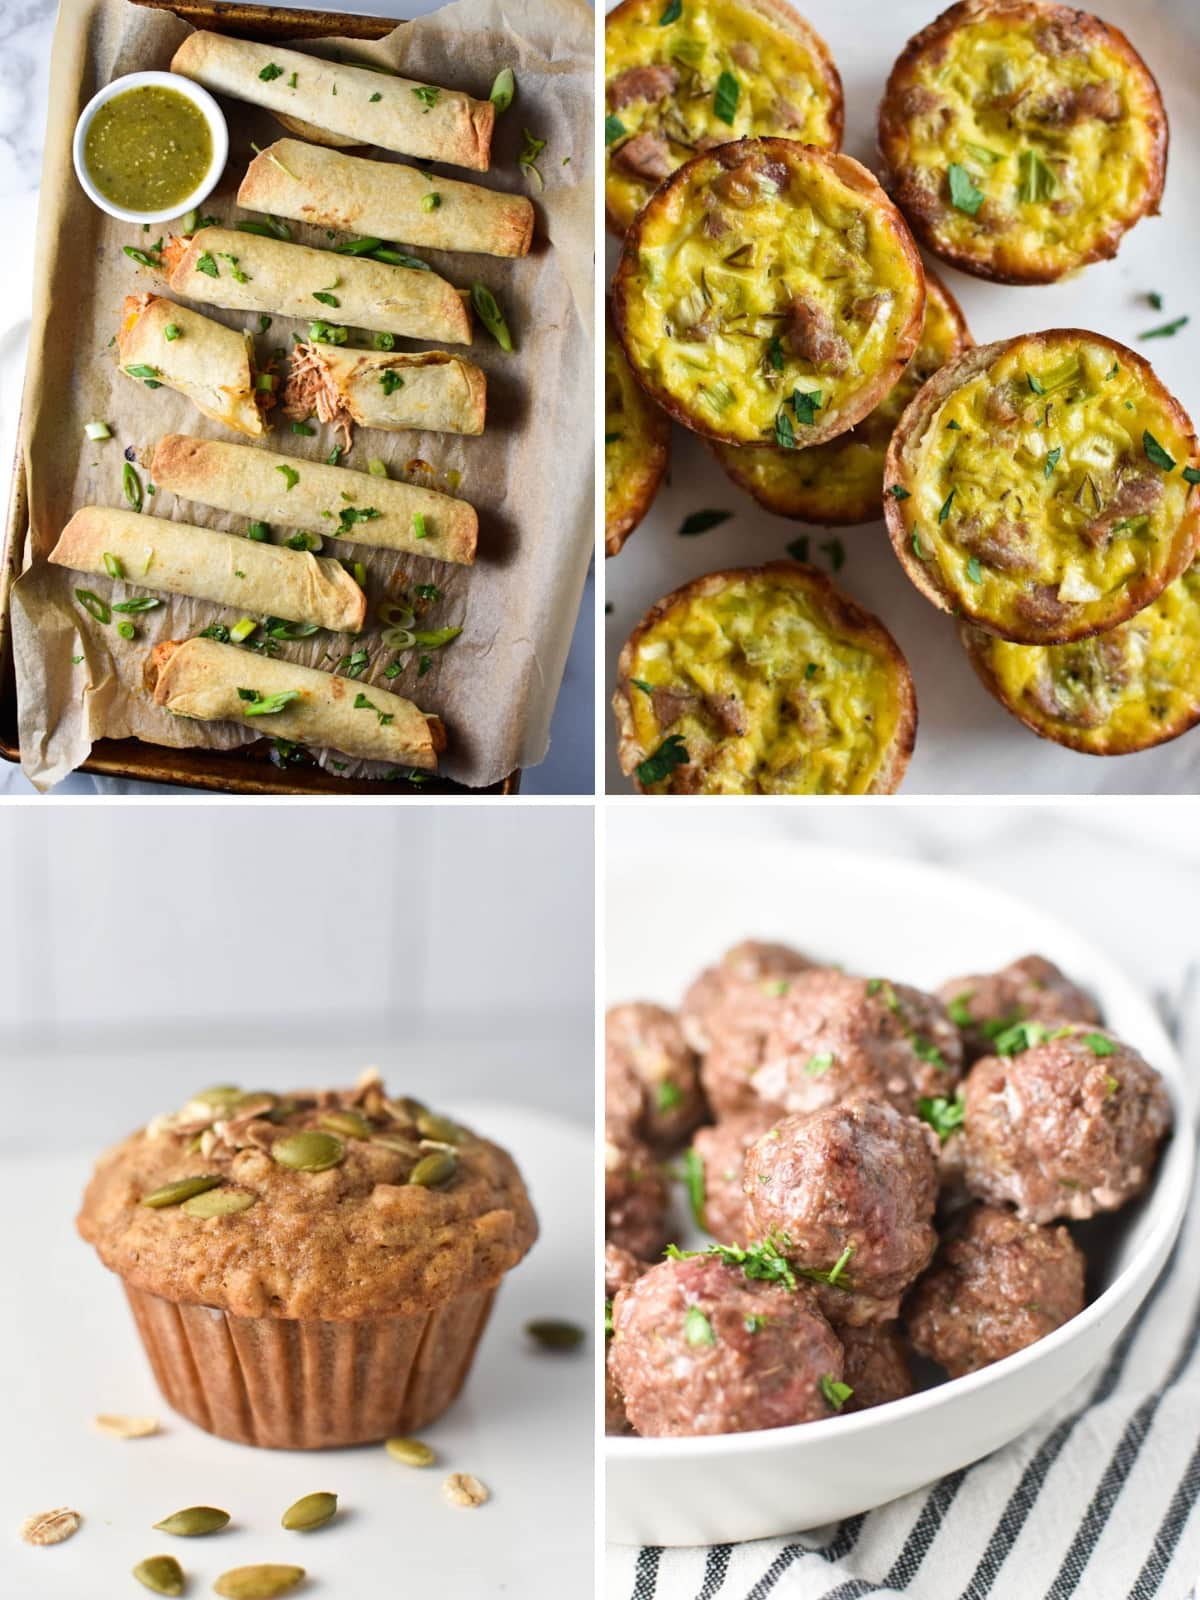 Meal prep snack ideas including taquitos, muffins, meatballs, and quiche